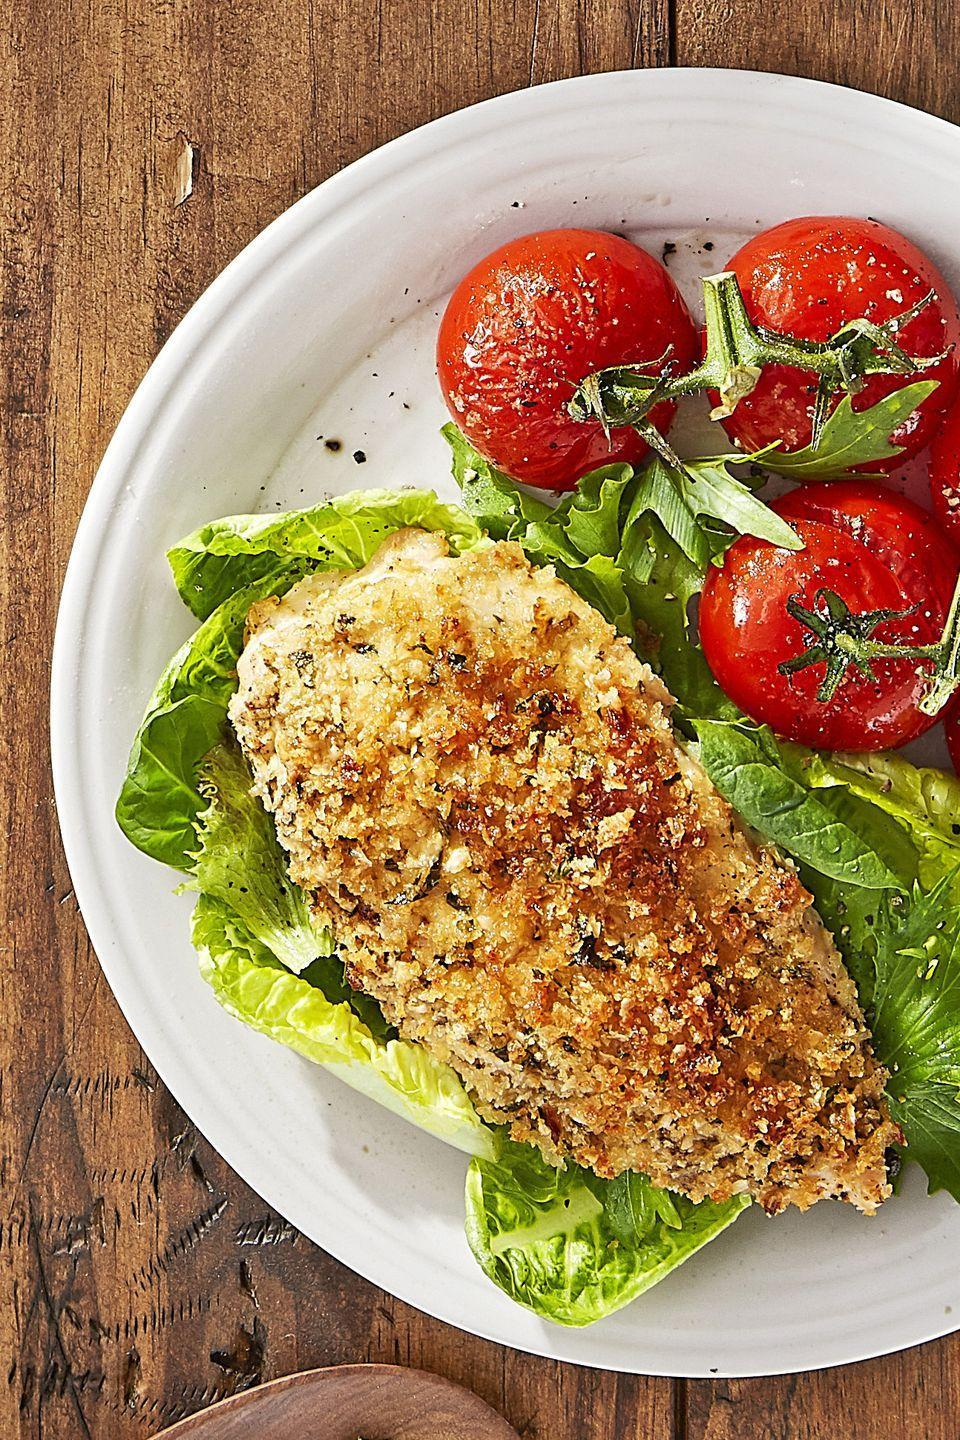 "<p>Panko chicken cutlets get bursts of flavor thanks to roasted Campari tomatoes.</p><p><strong><a href=""https://www.countryliving.com/food-drinks/recipes/a44271/roasted-parmesan-chicken-tomatoes-recipe/"" rel=""nofollow noopener"" target=""_blank"" data-ylk=""slk:Get the recipe"" class=""link rapid-noclick-resp"">Get the recipe</a>. </strong></p>"